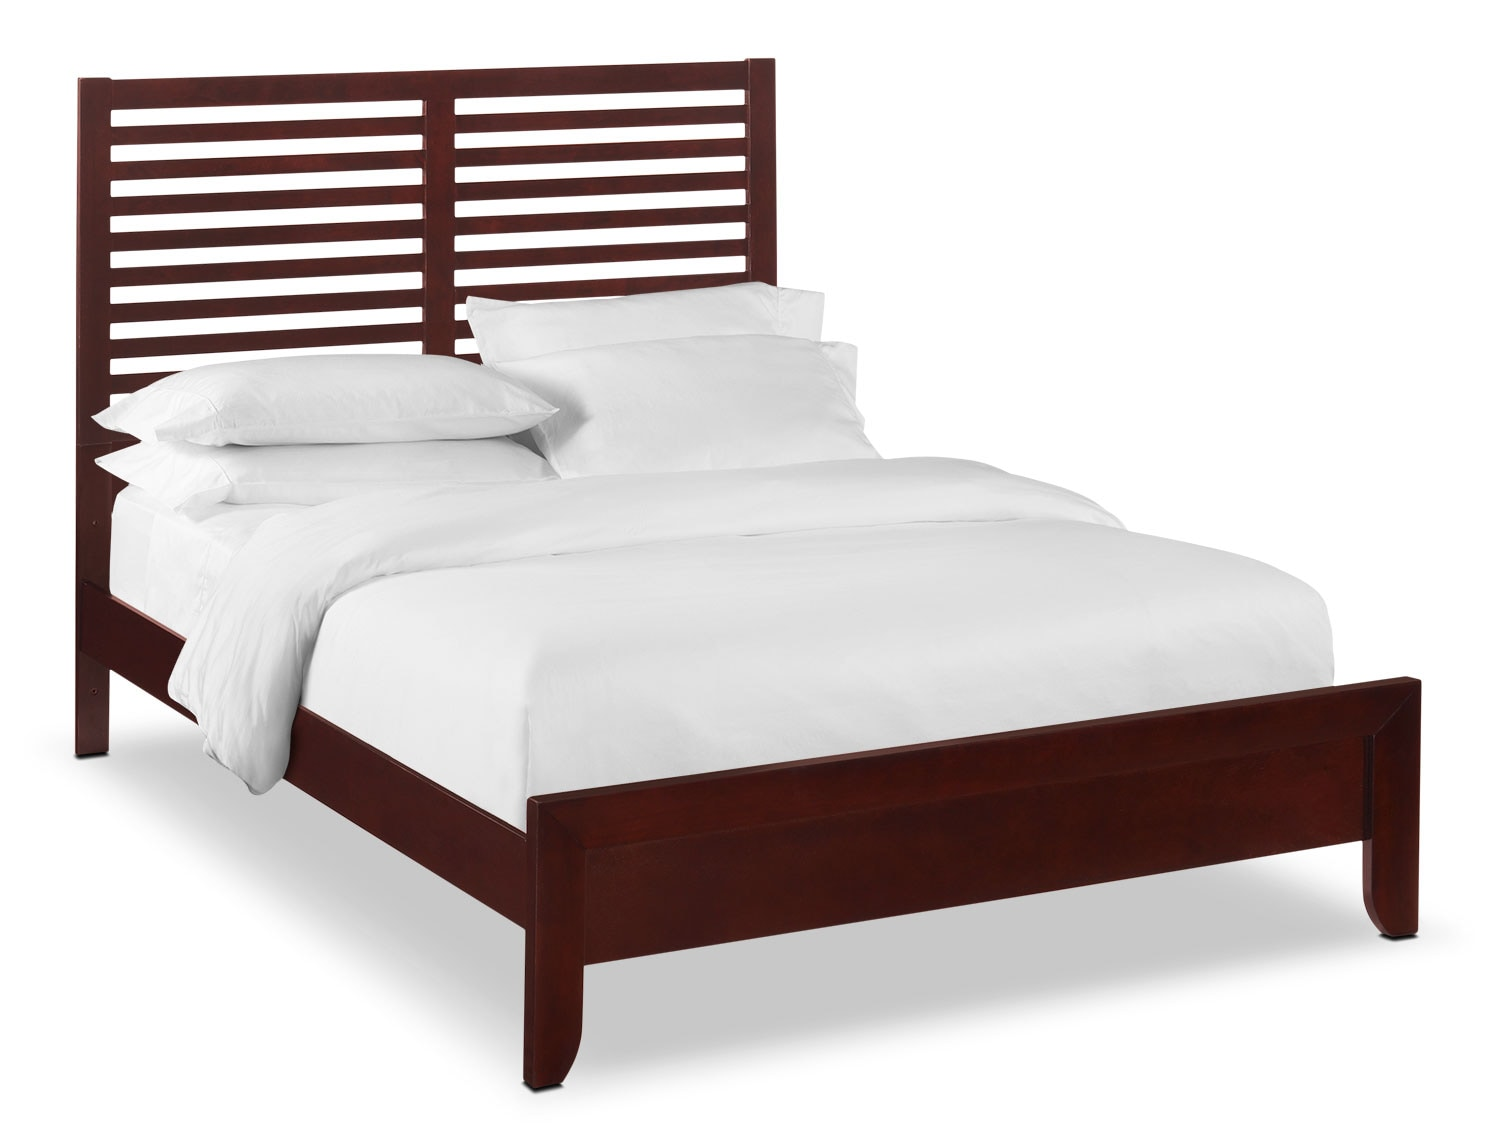 shop king size beds value city furniture 17689 | 492880 fit inside 7c320 320 composite to center center 7c320 320 background color white